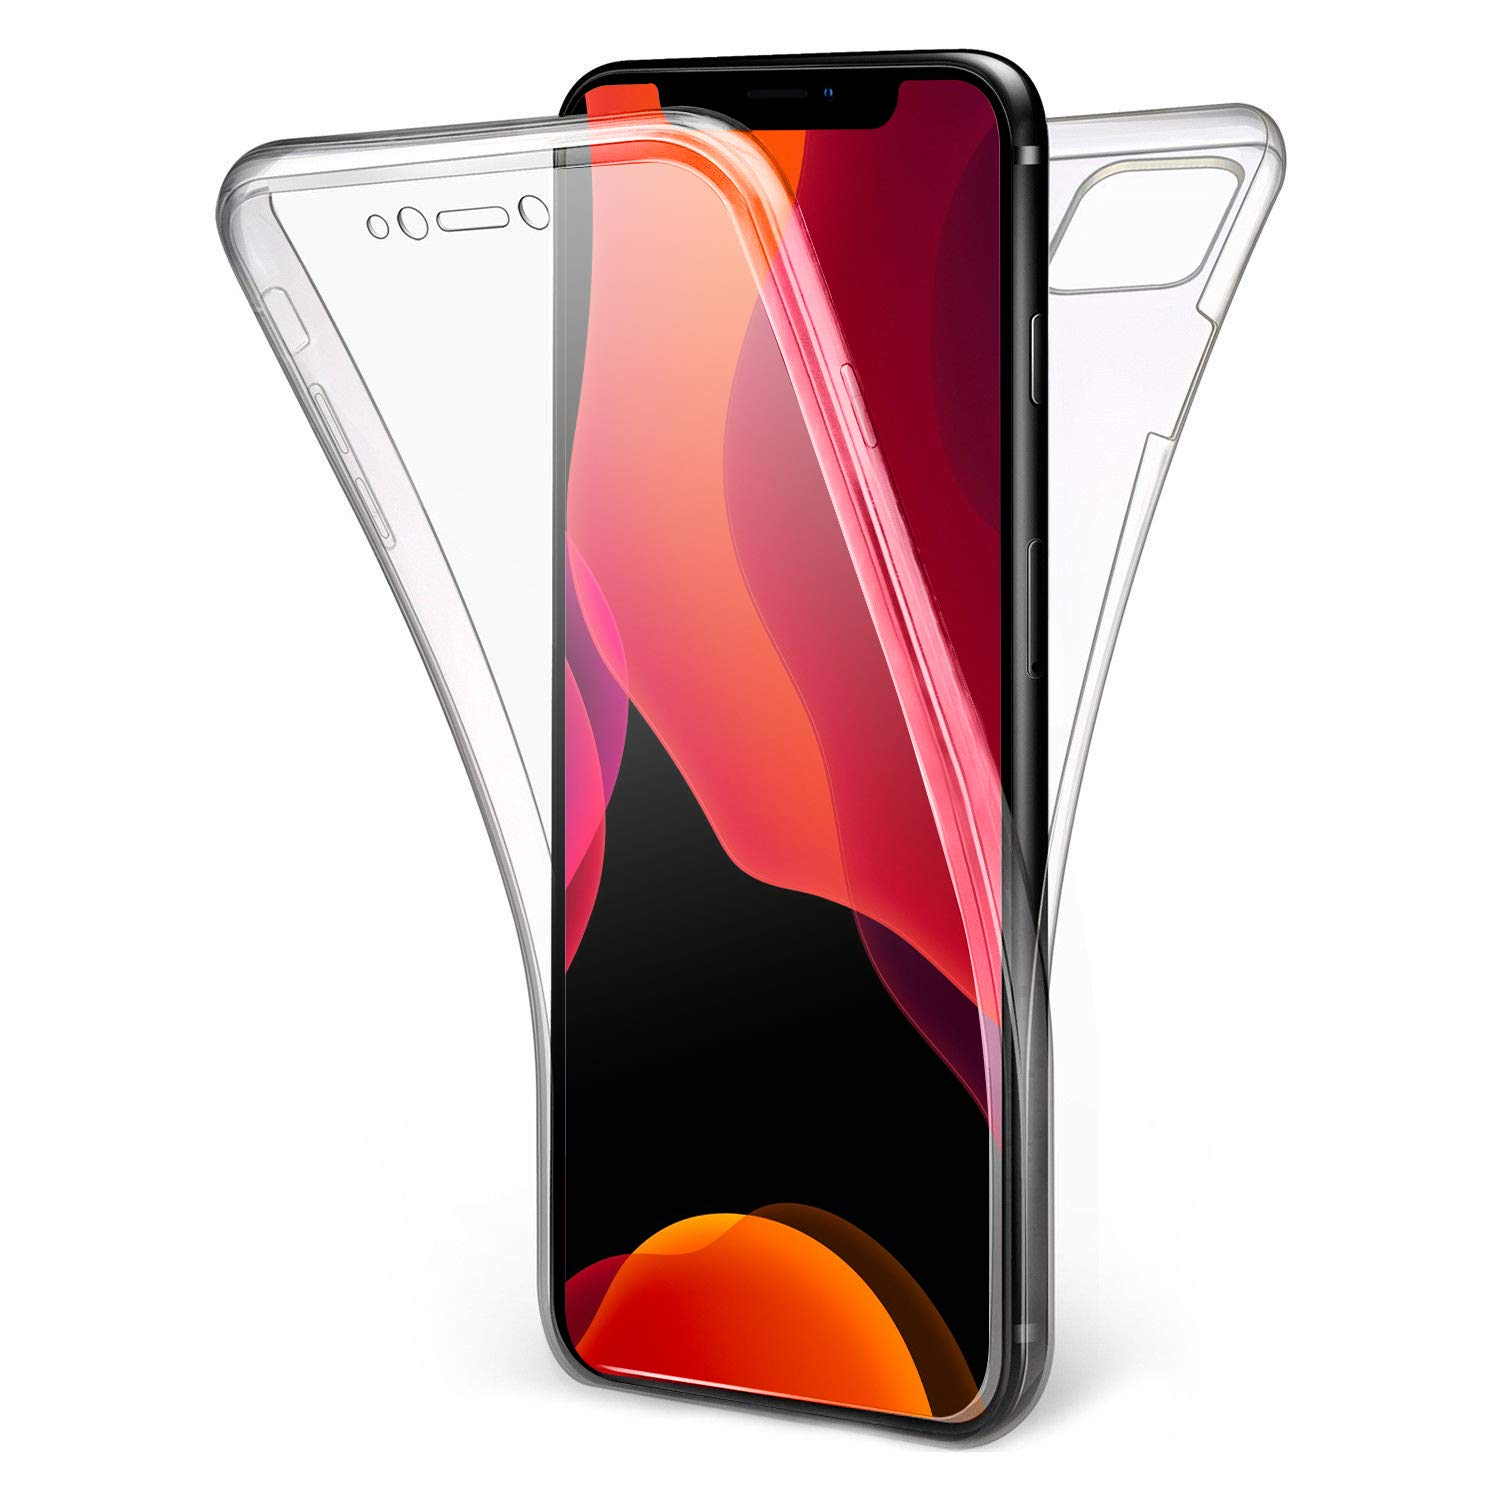 Olixar for iPhone 11 Pro Full Body Case - 360 Degree Full Body Cover - Front + Back Protection - Clear Slim Design - Wireless Charging Compatible - FlexiCover - Clear